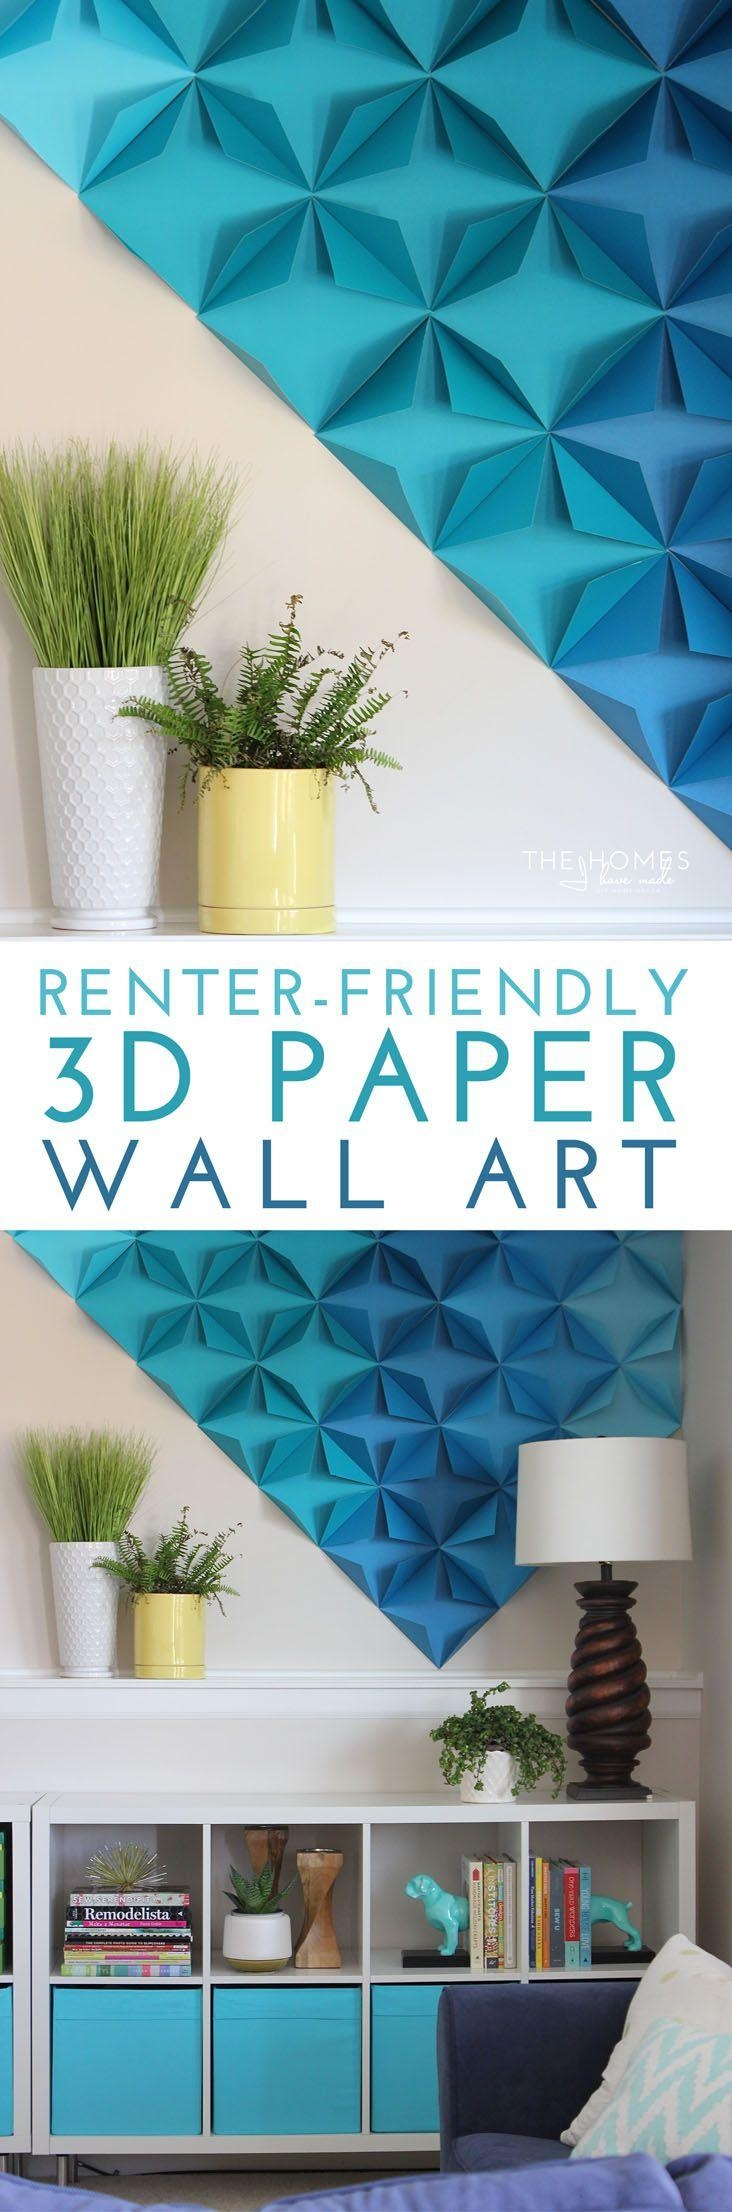 Best 25+ 3D Wall Art Ideas On Pinterest | Paper Wall Art, Paper Throughout 3D Paper Wall Art (Image 6 of 20)